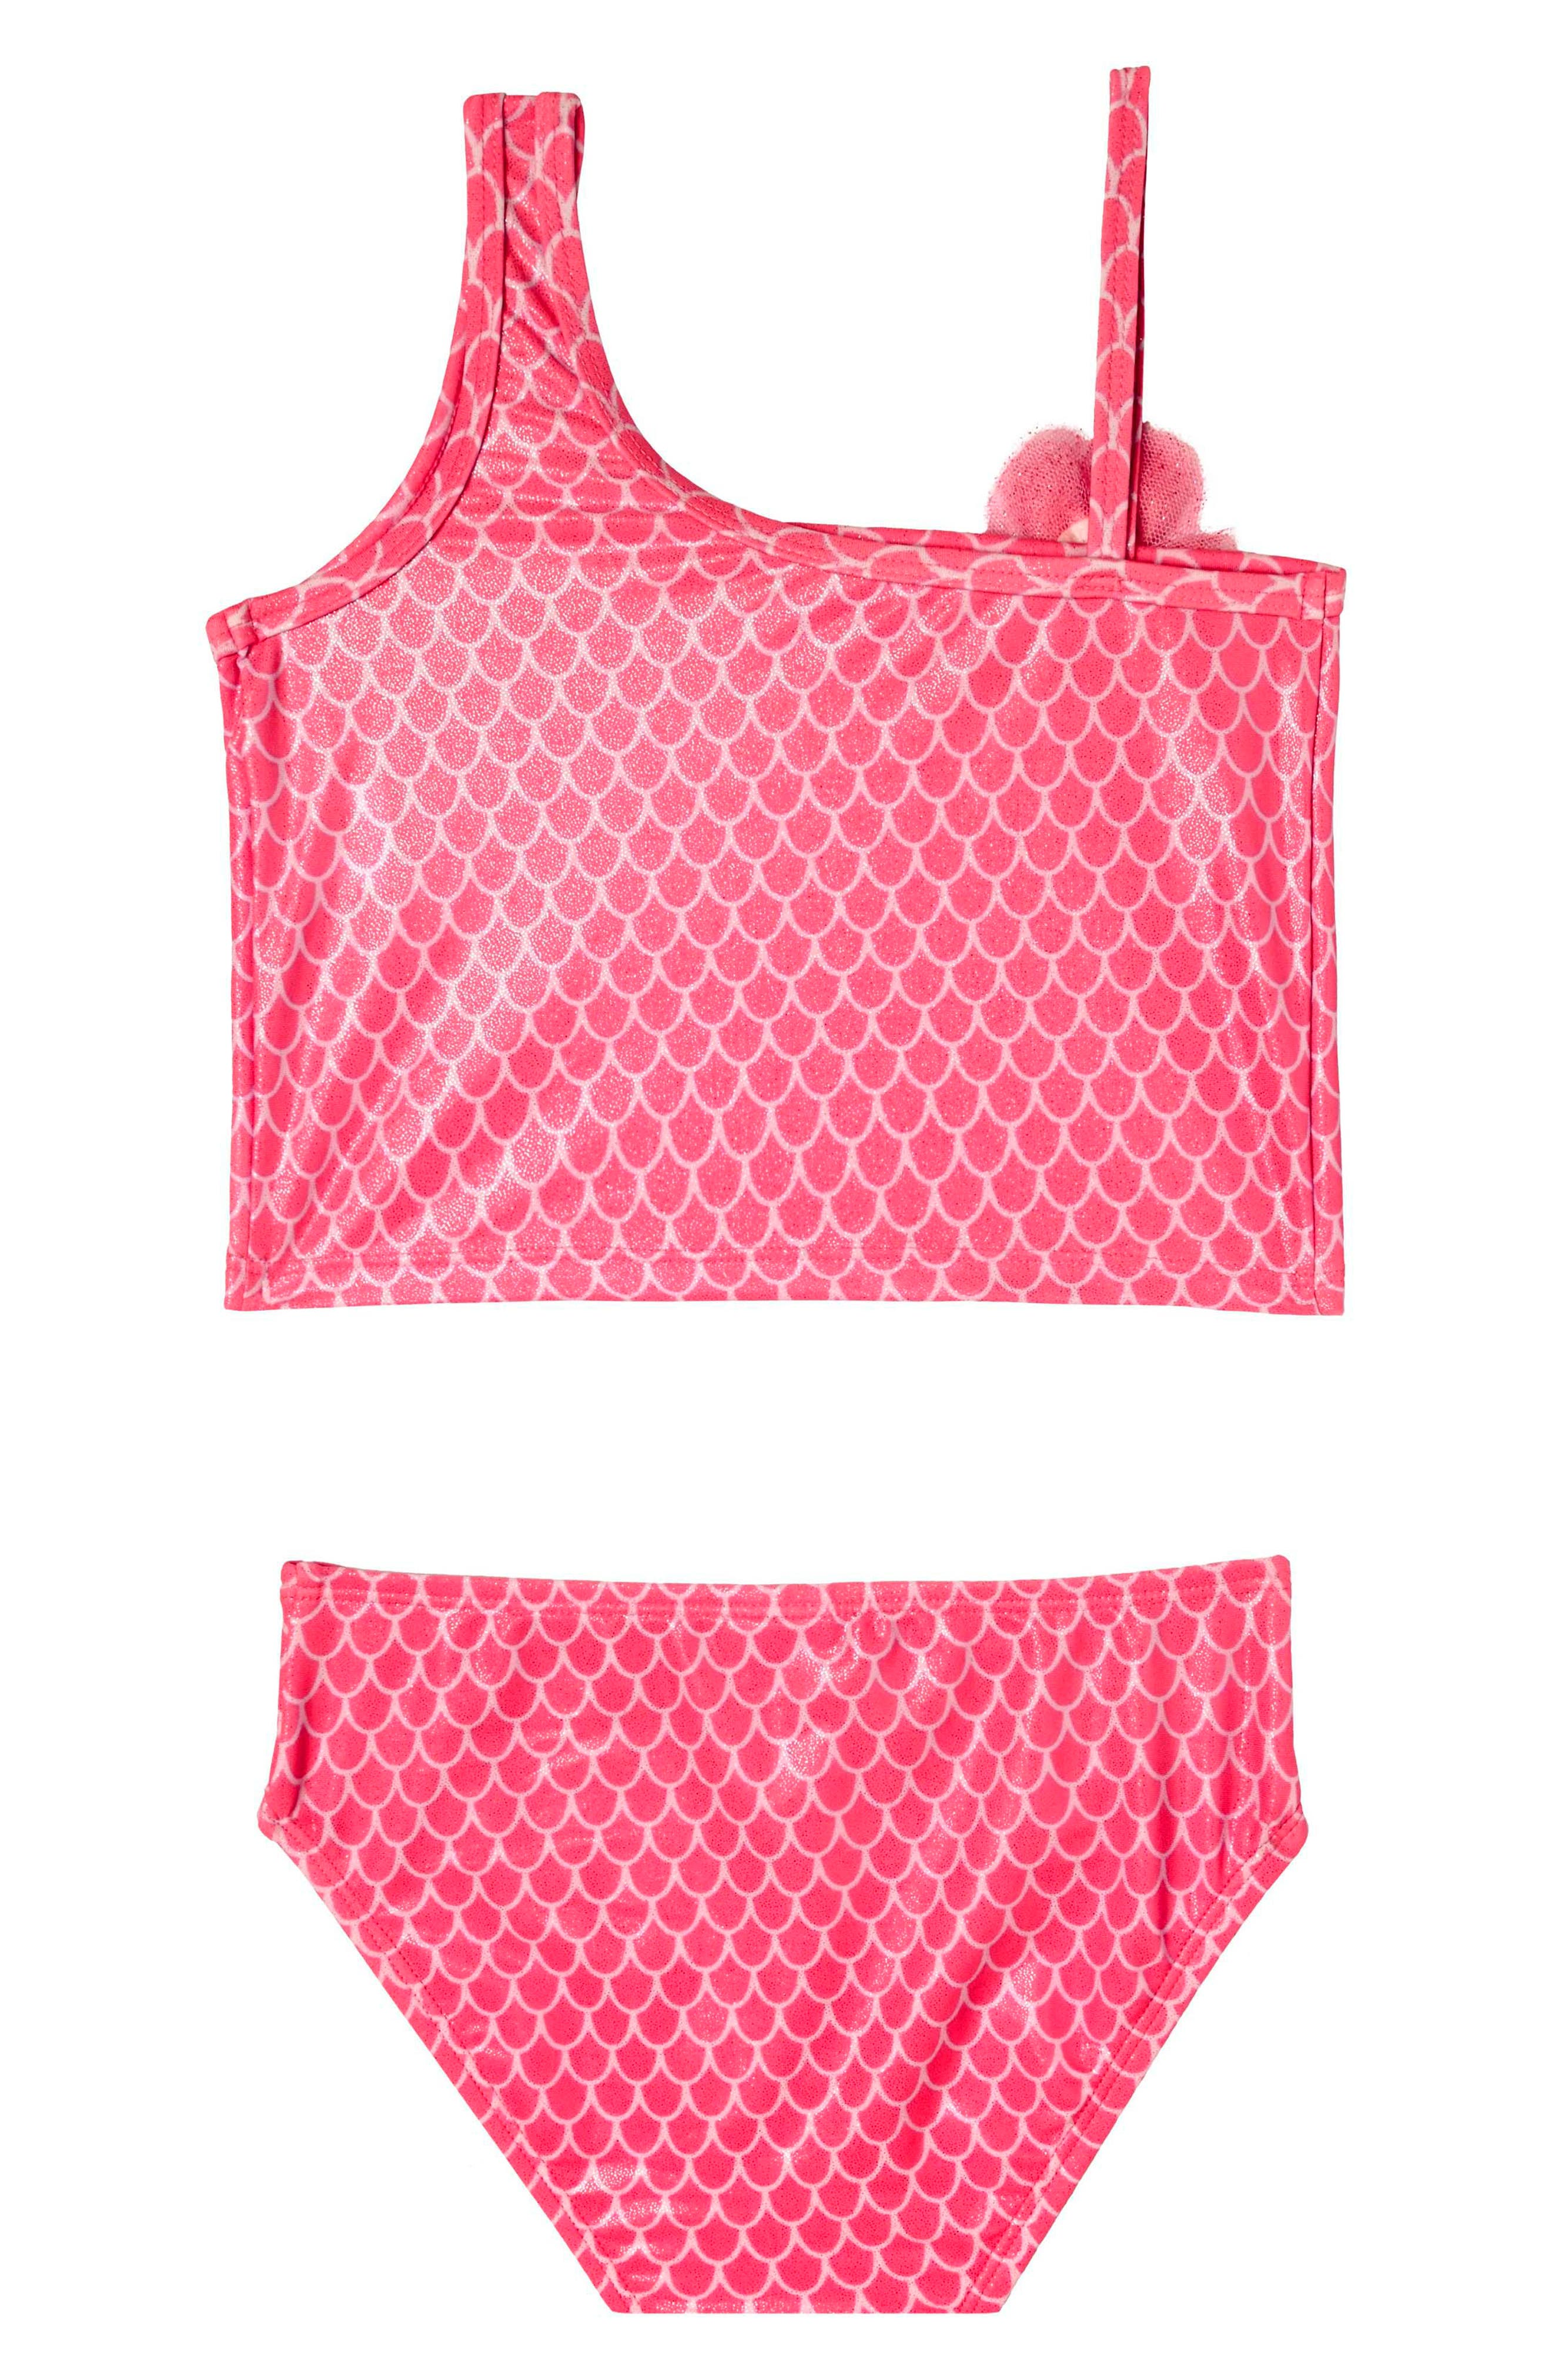 Mermaid Princess Two-Piece Tankini Swimsuit,                             Alternate thumbnail 2, color,                             Pink